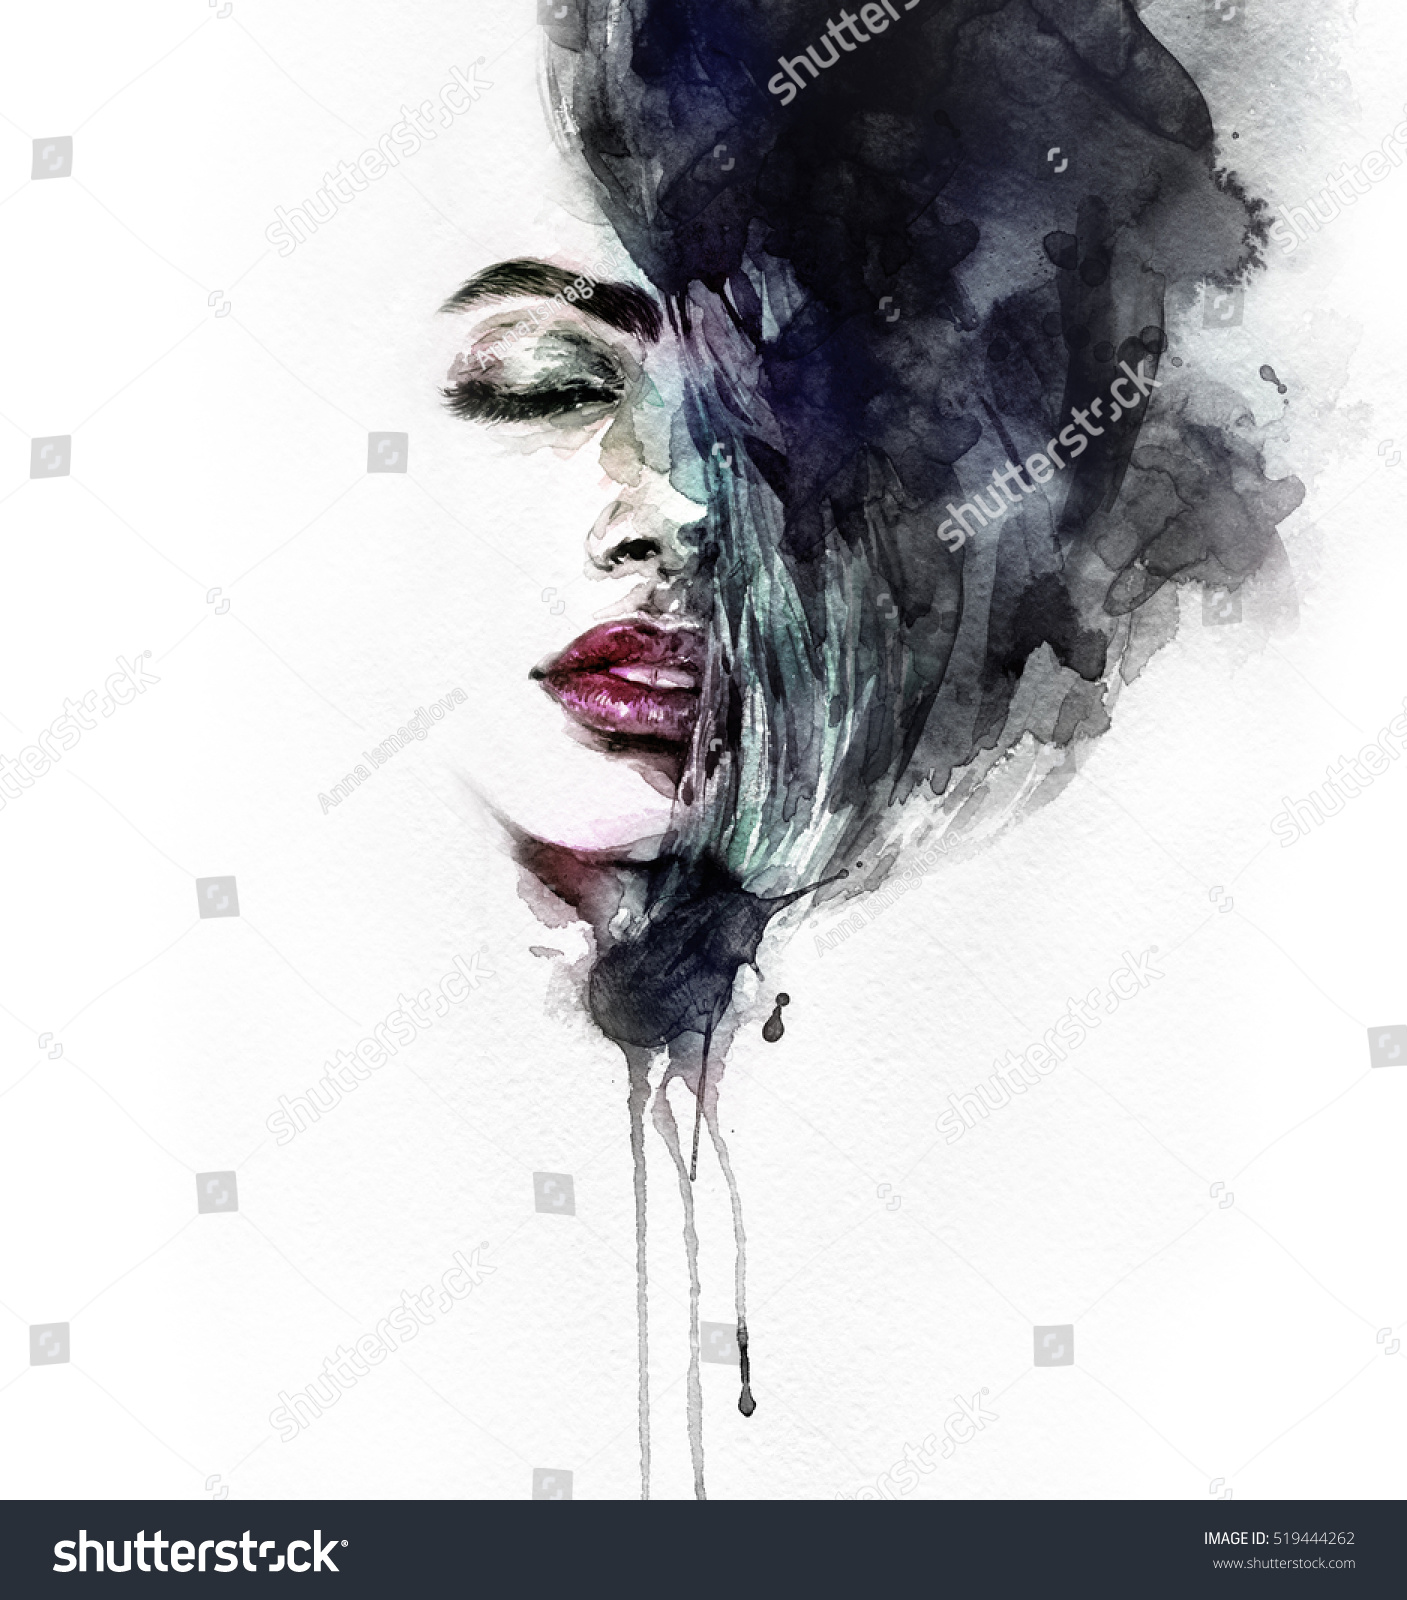 Abstract woman face fashion illustration watercolor painting